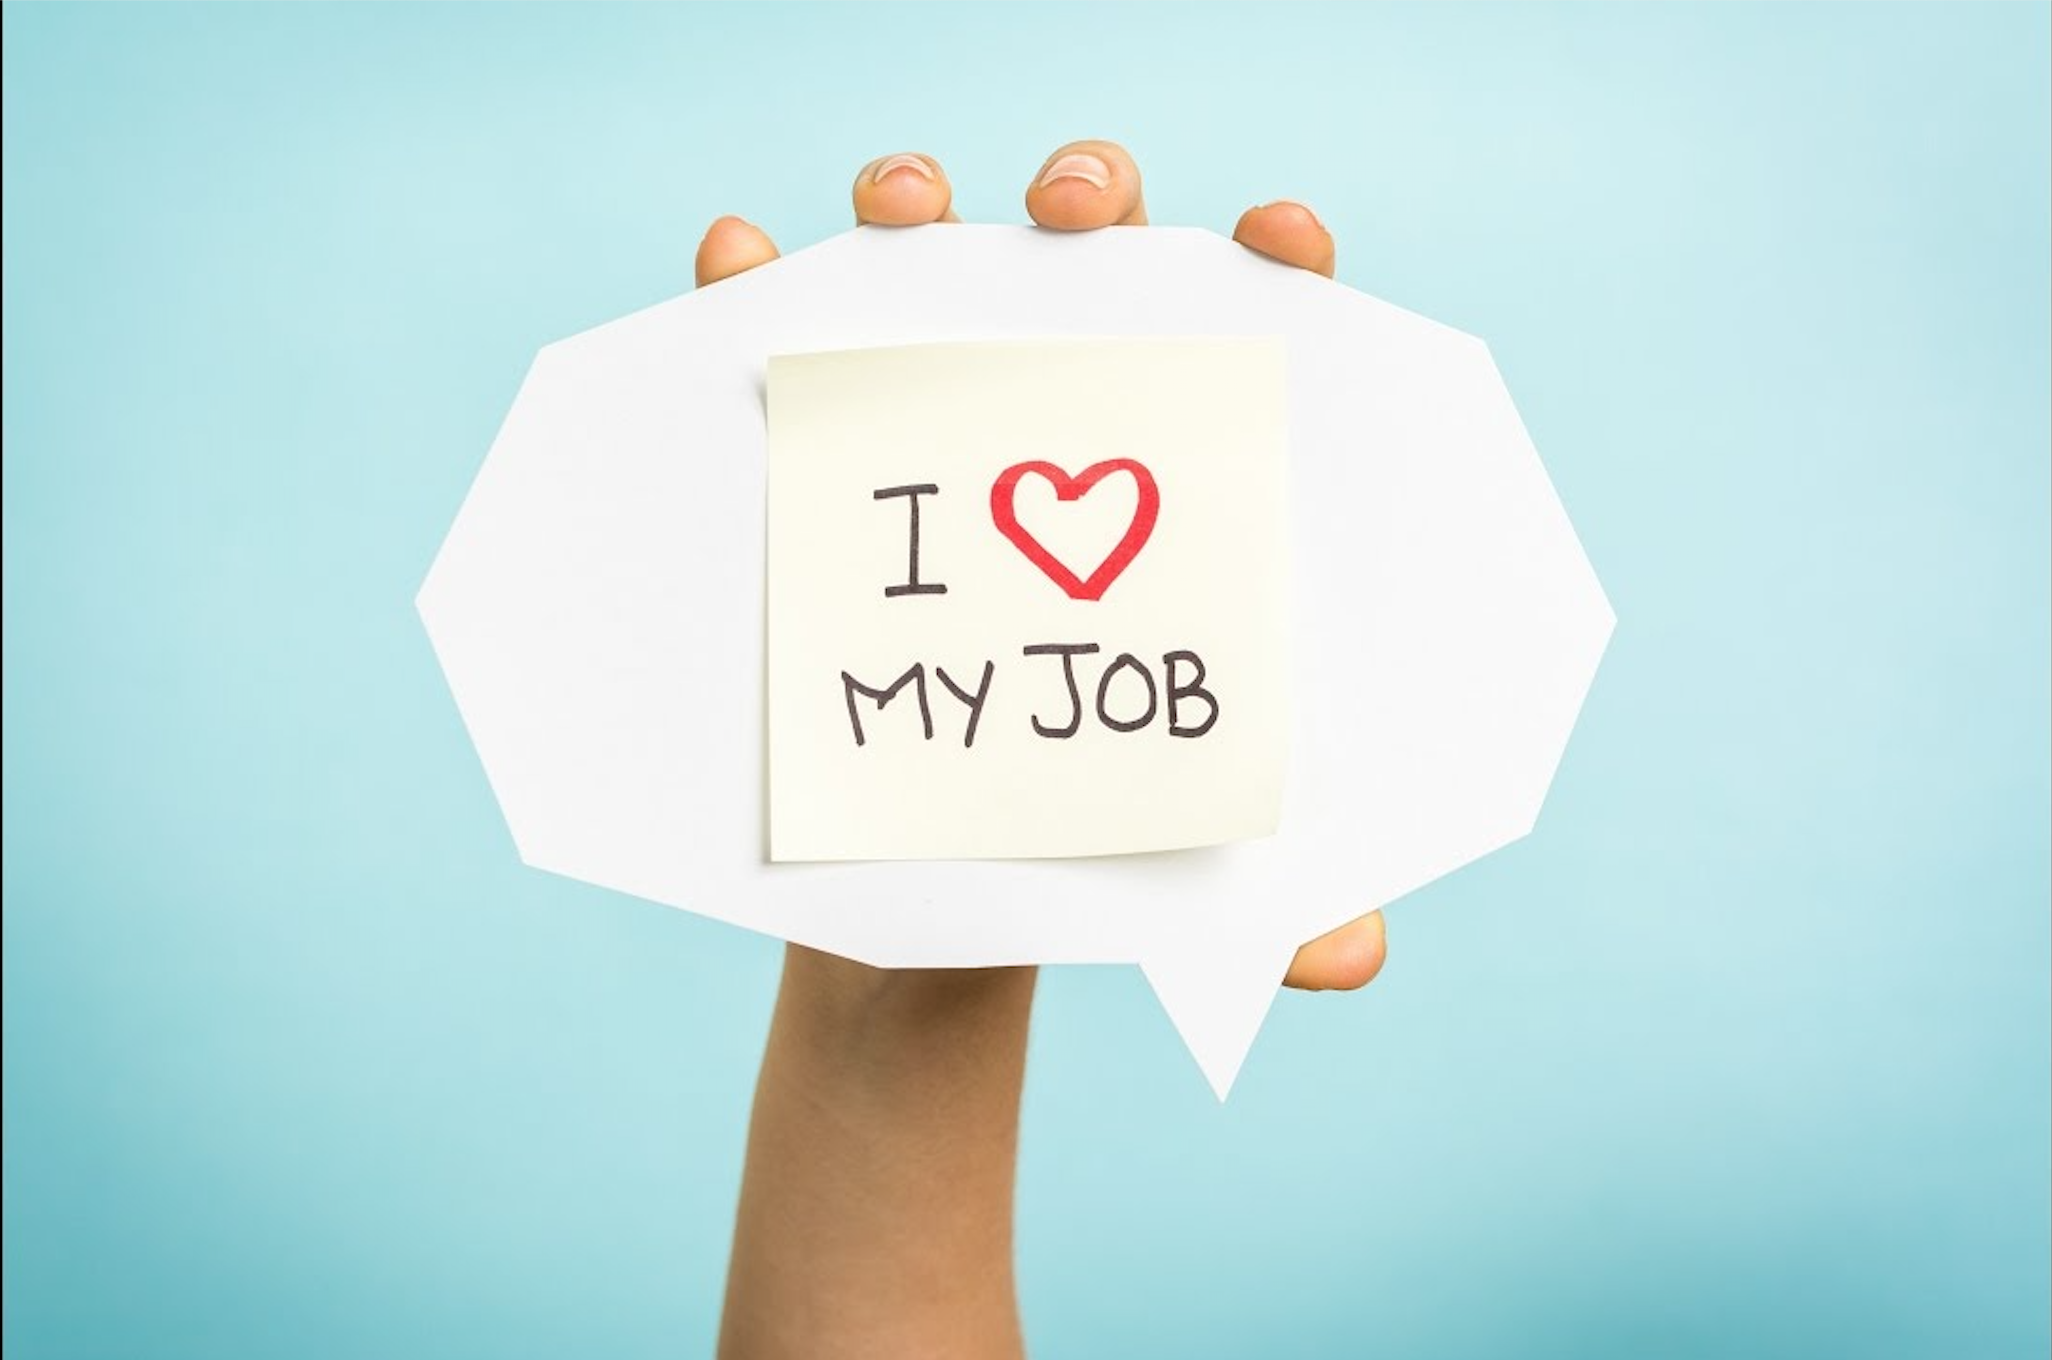 work life balance happiness do what you love or love what you do for happiness or dream job at work